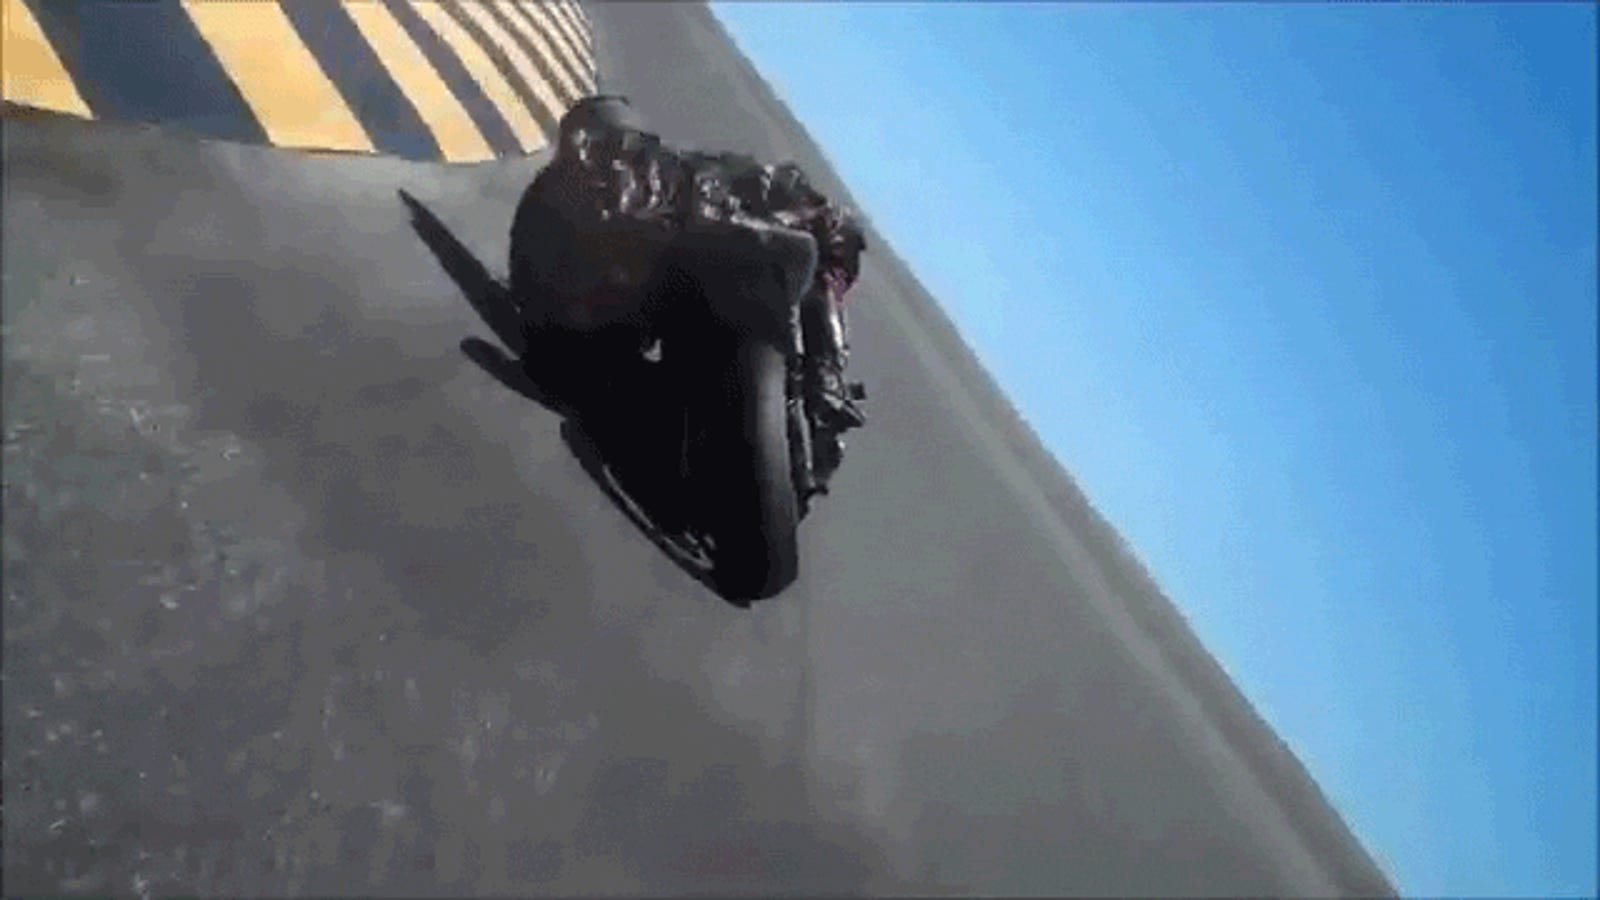 Psycho human dragged his head on the ground on a motorcycle turn